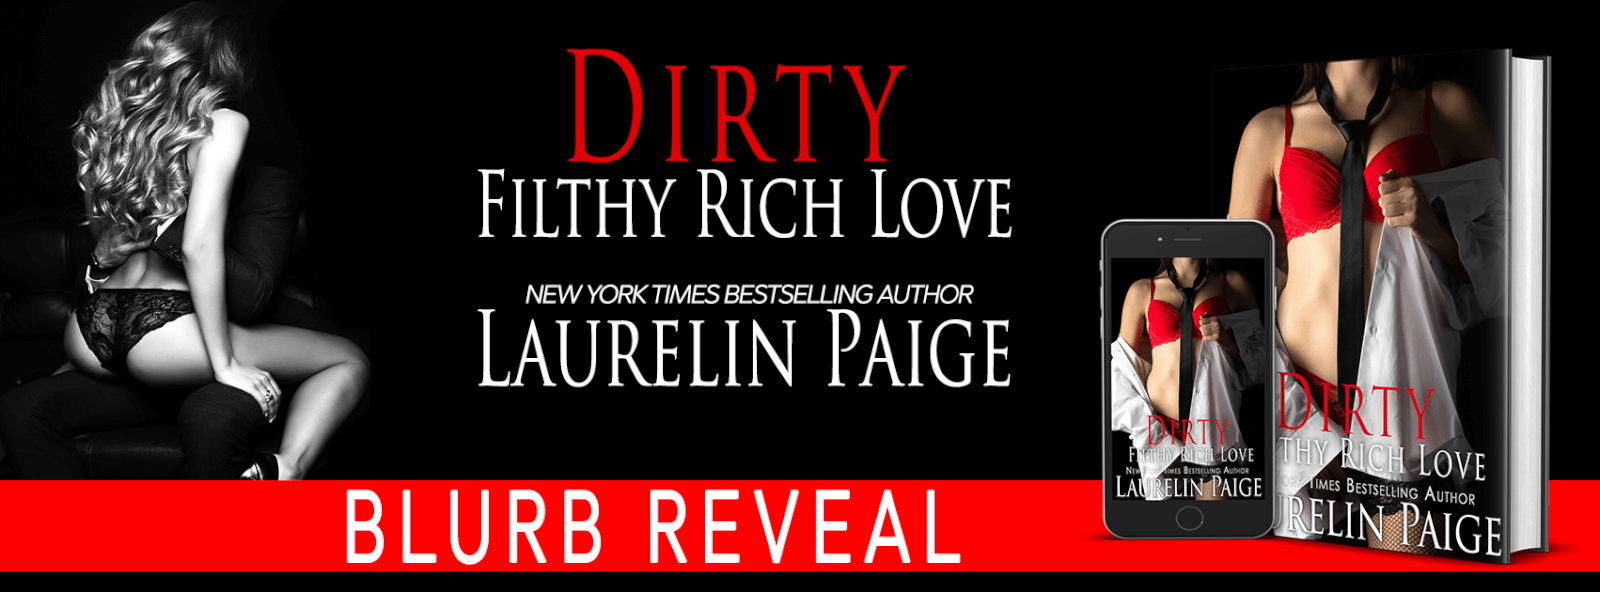 Blurb Reveal: Dirty Filthy Rich Love by Laurelin Paige